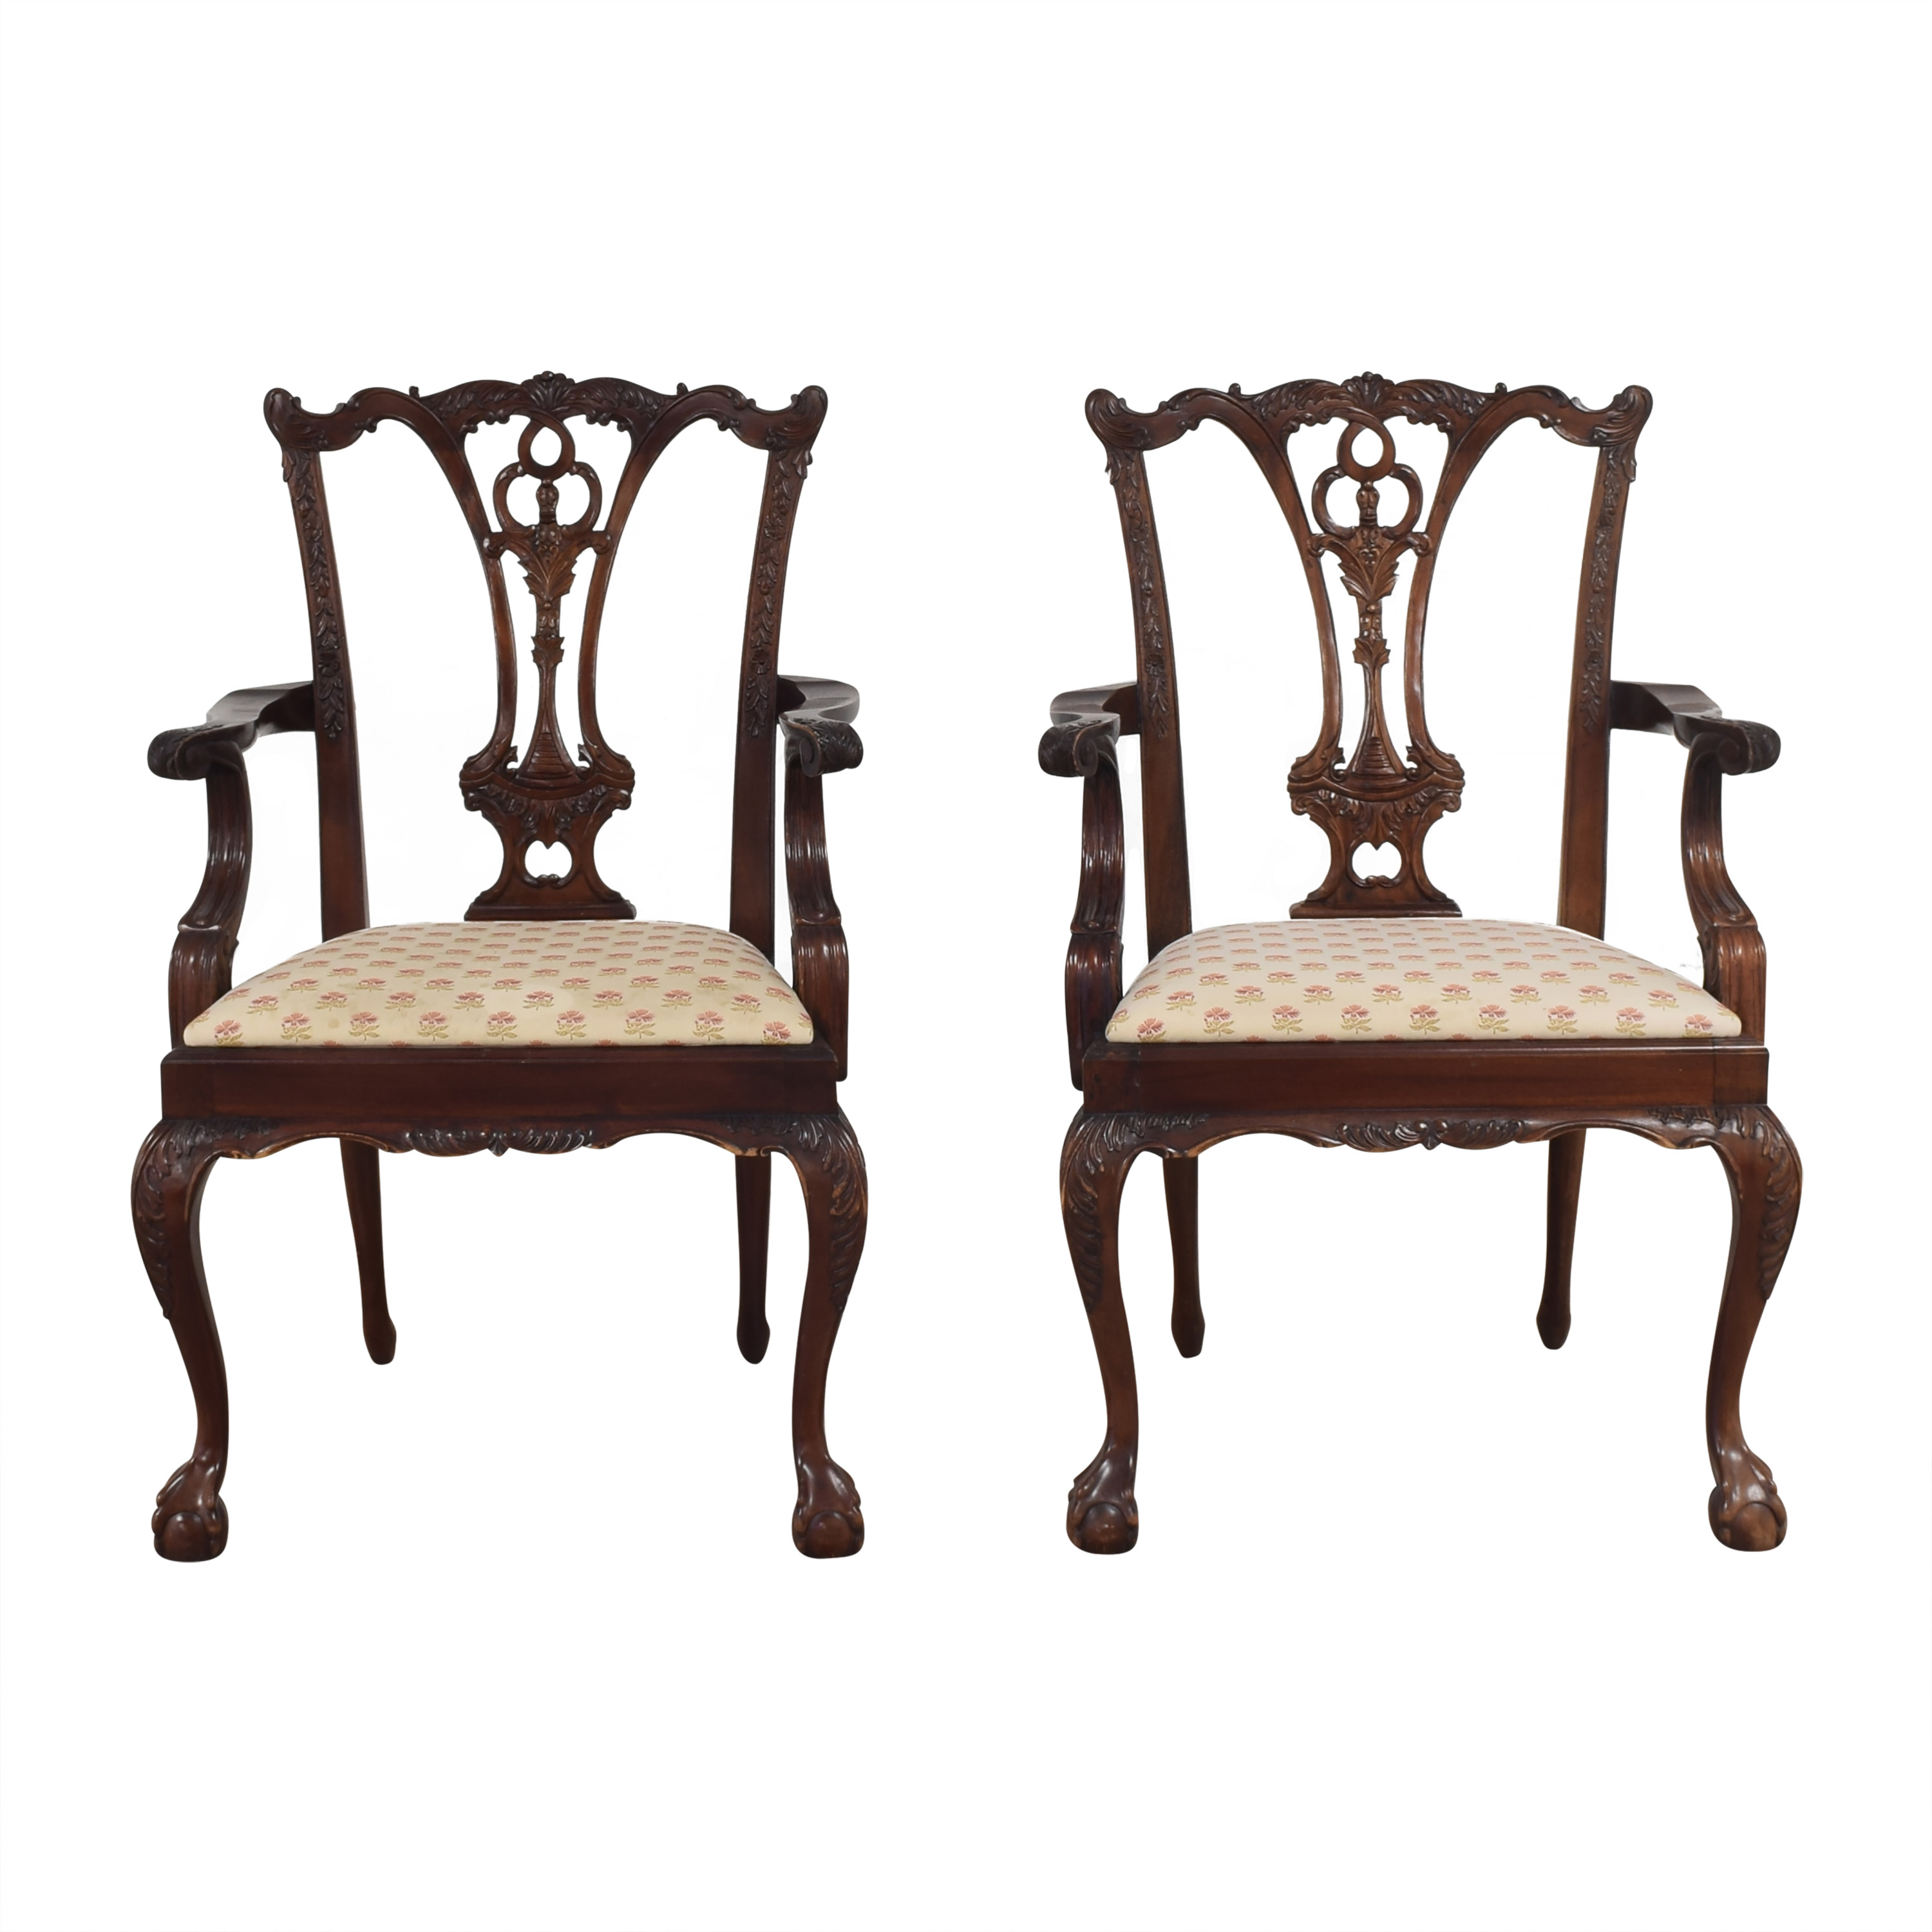 Paramount Antiques Paramount Antiques Chippendale Dining Arm Chairs coupon